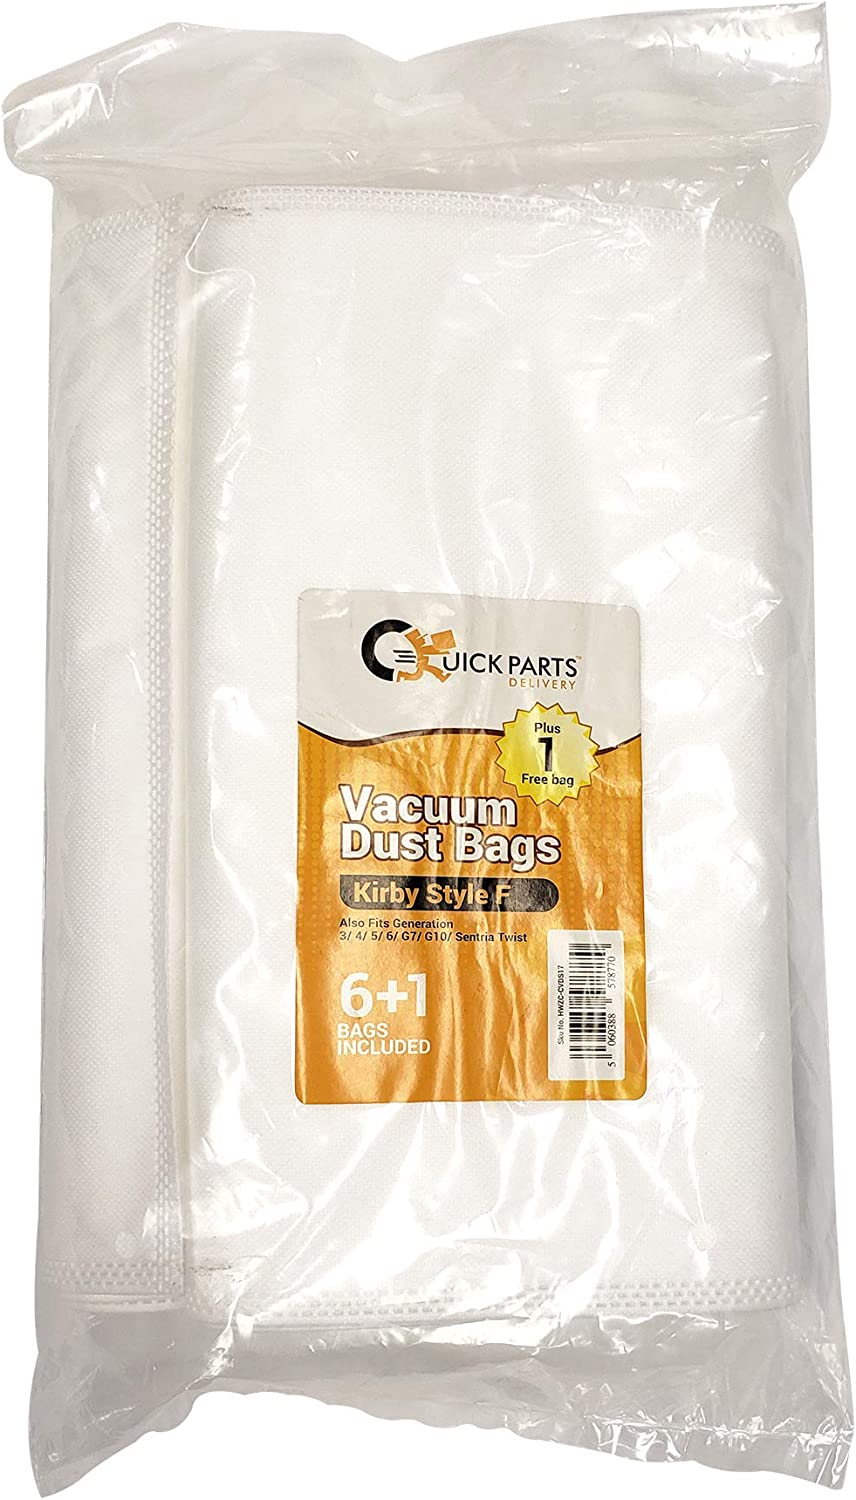 Quick Parts Delivery Vacuum Dust Bags for Kirby Style F Package of 7